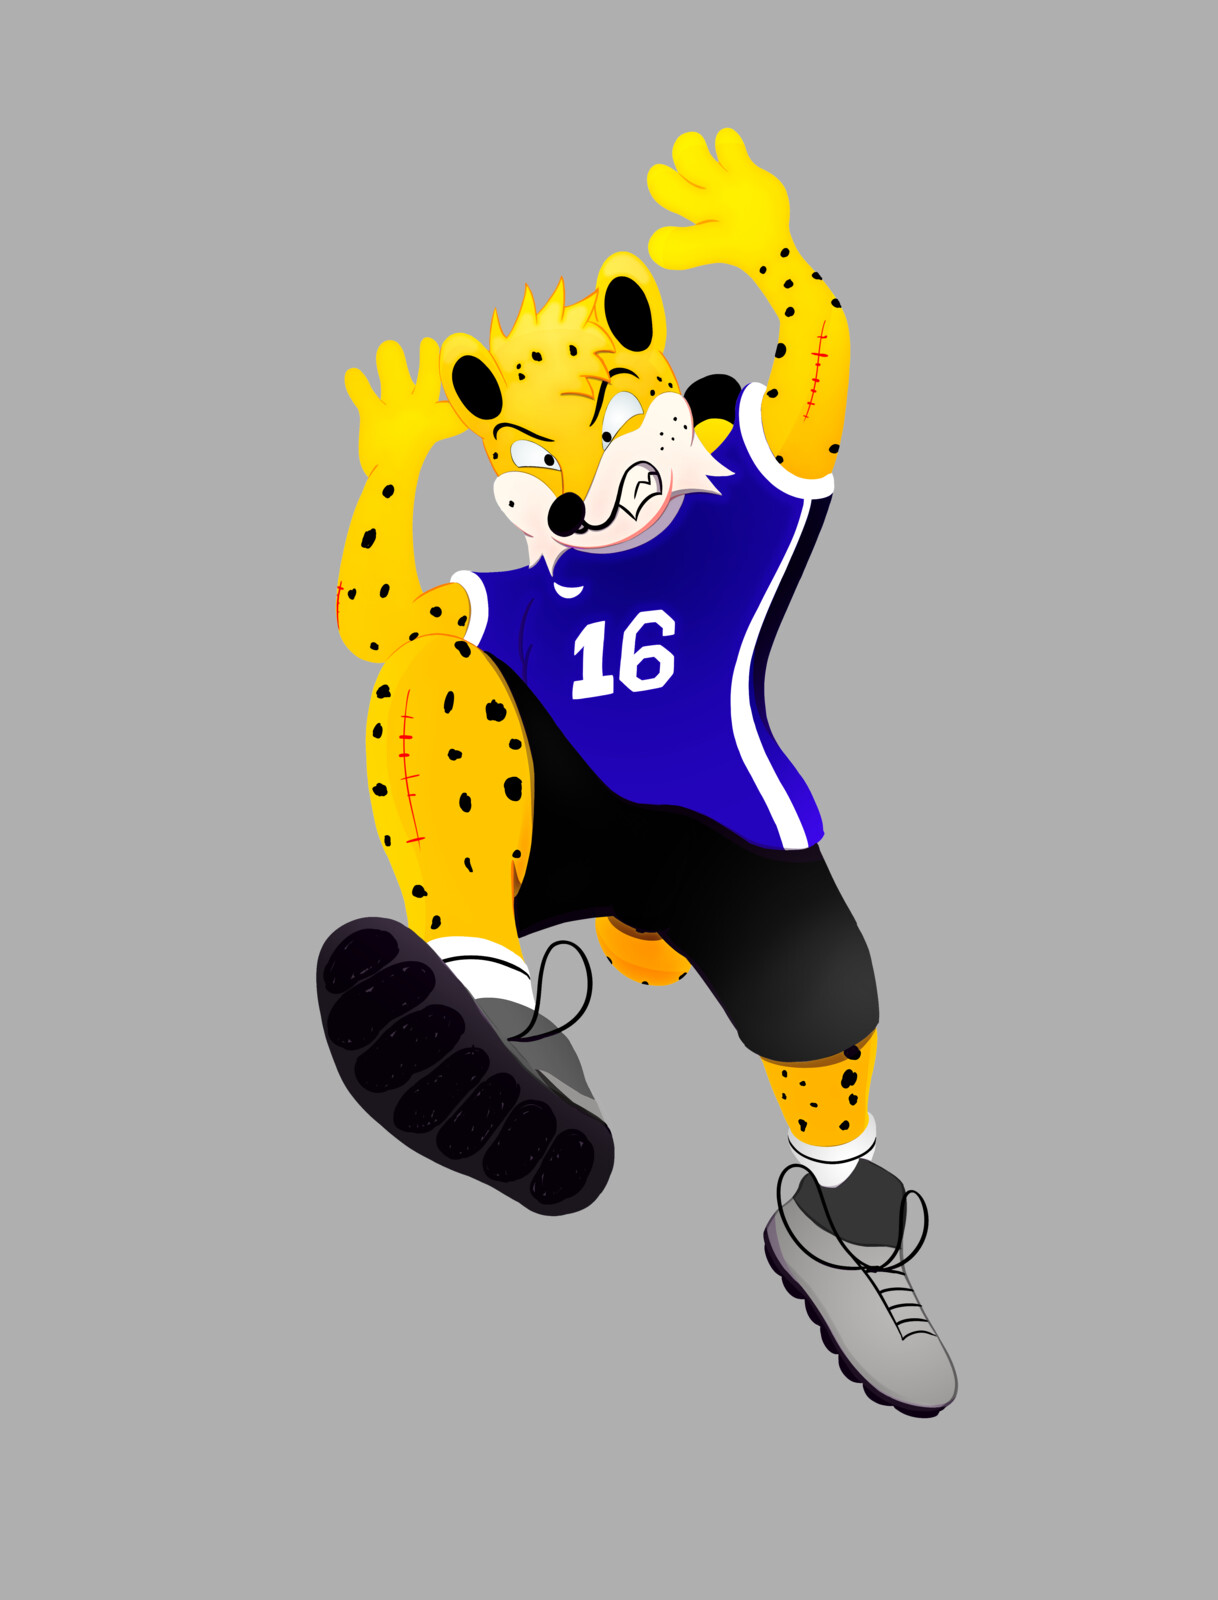 NITRO THE CHEETAH